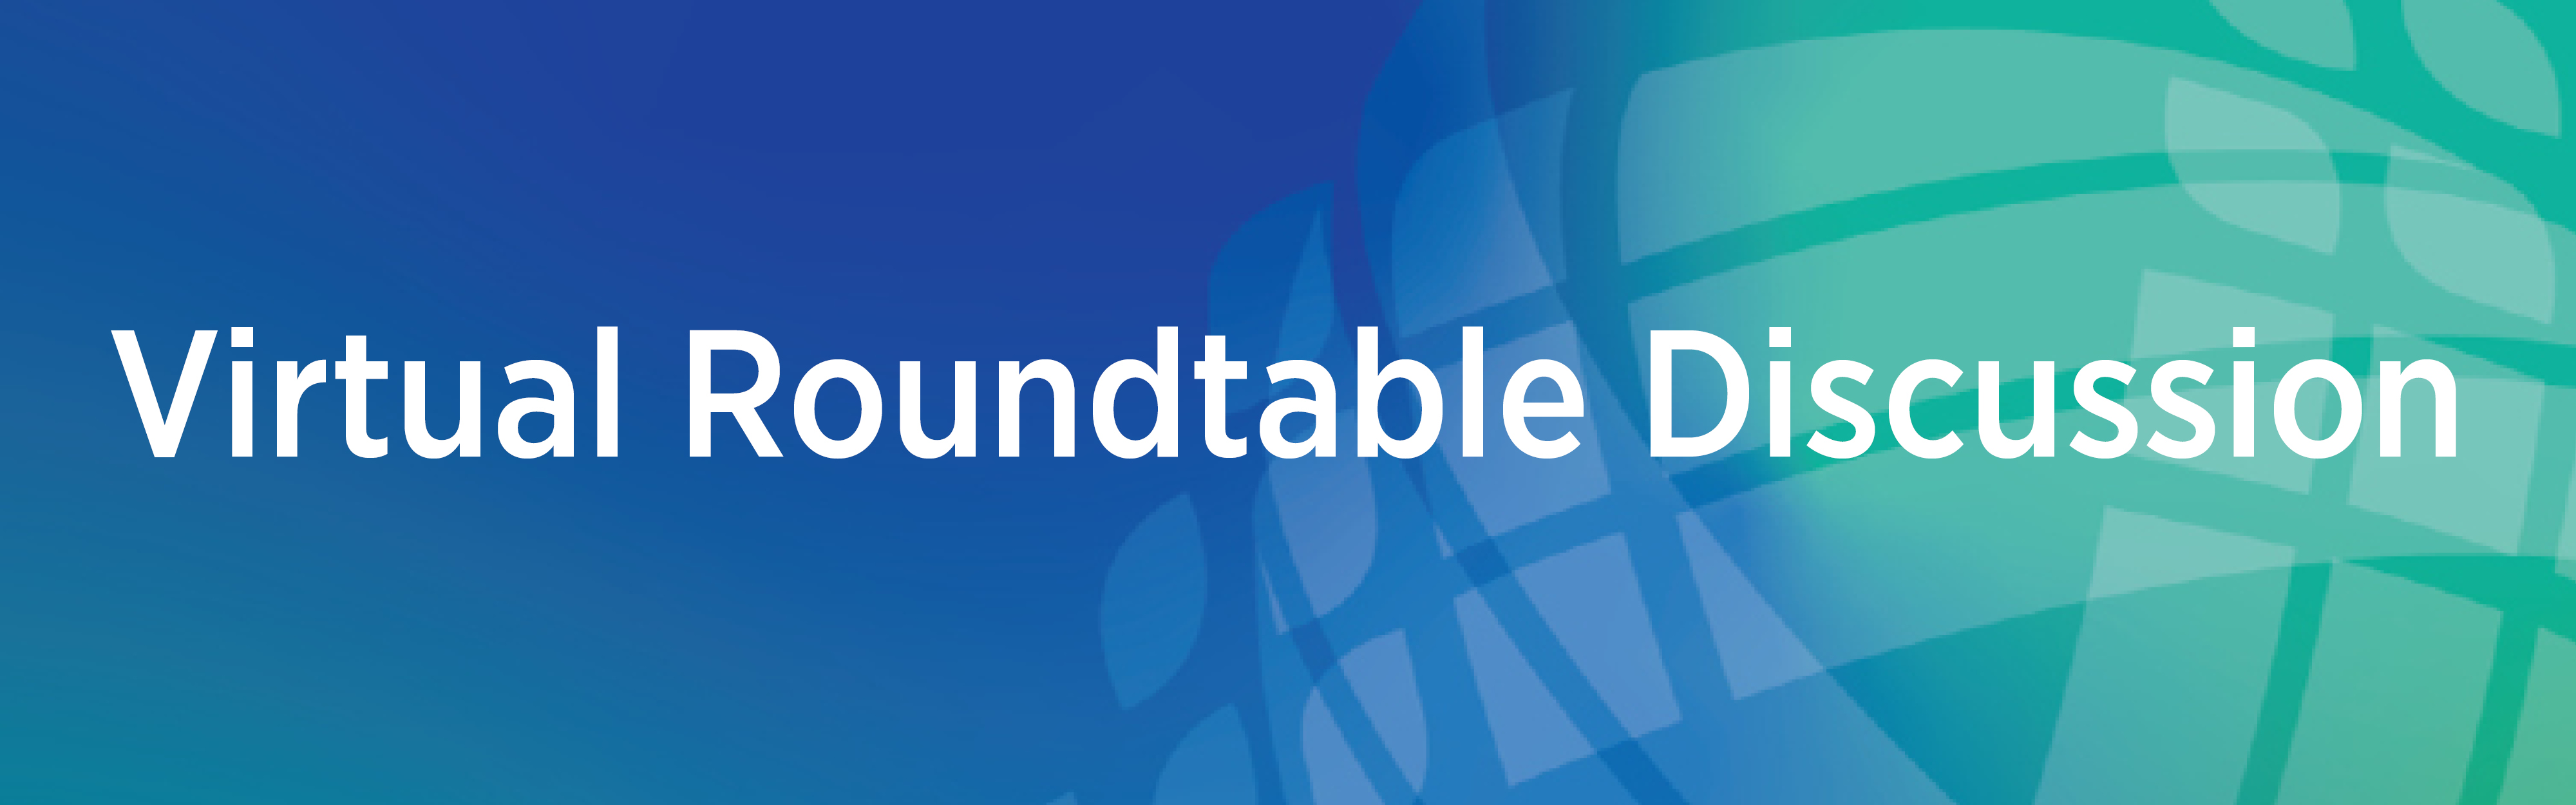 The words virtual roundtable discussion against a teal background with translucent VHB logo components.